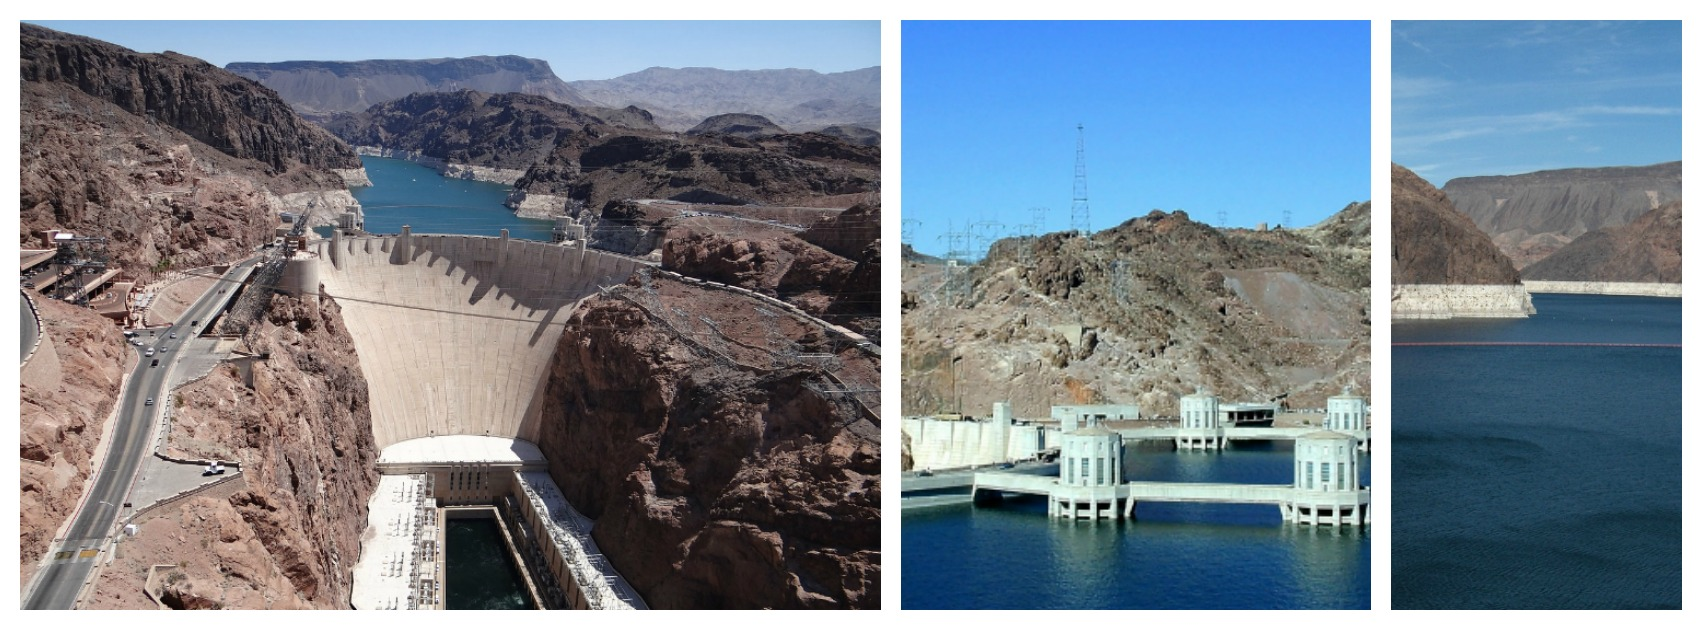 Visit Hoover Dam, a Must See Man-Made Wonder